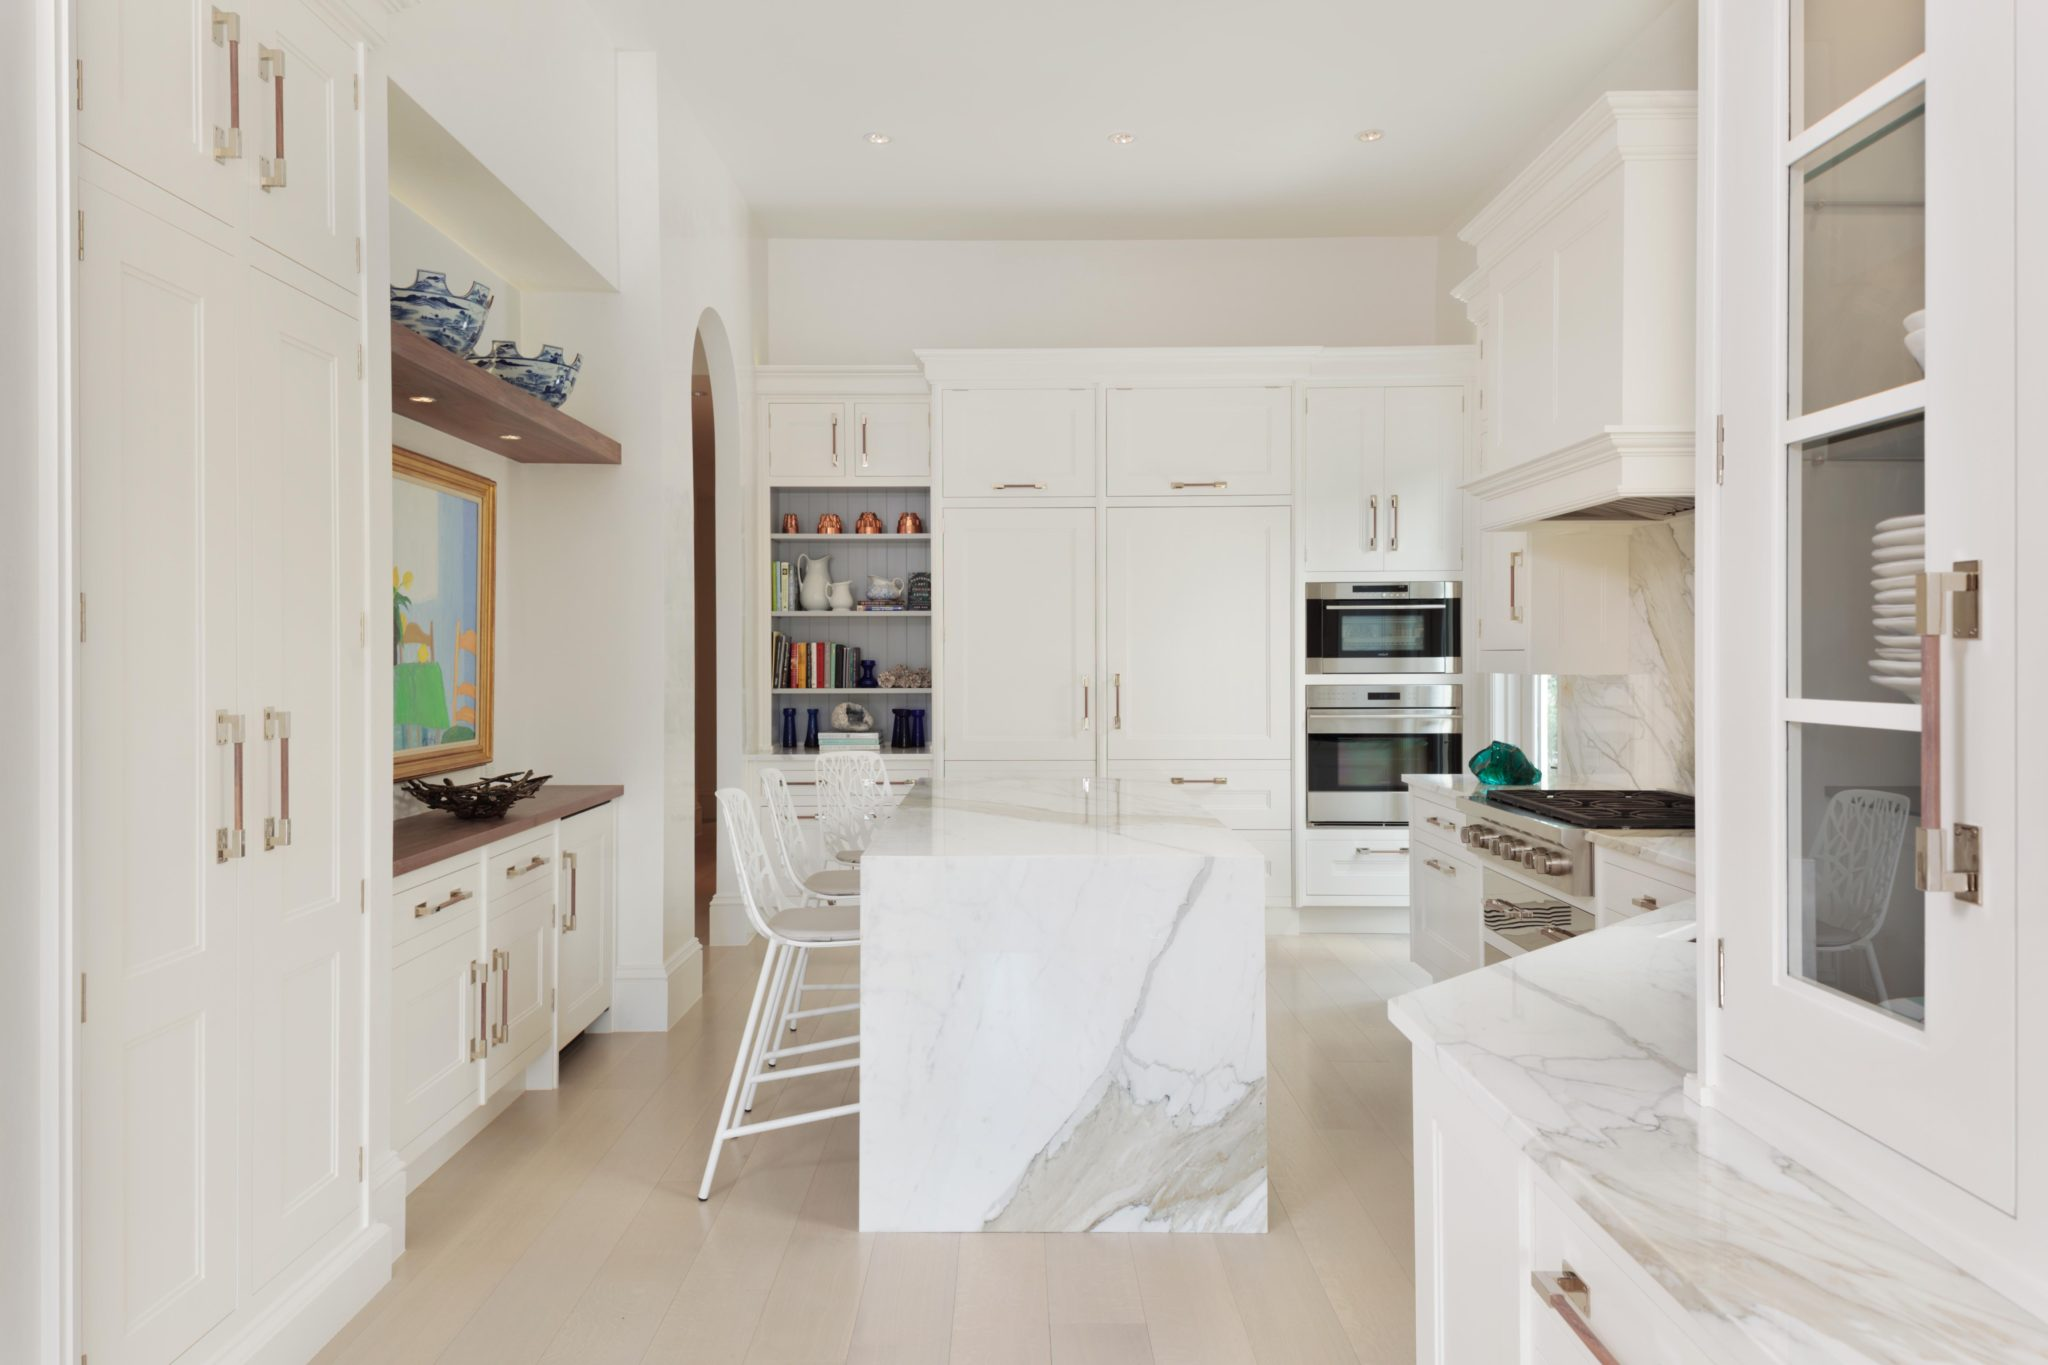 Bay Colony home renovation; fresh kitchen space housing sleek marble countertops by Judith Liegeois Designs